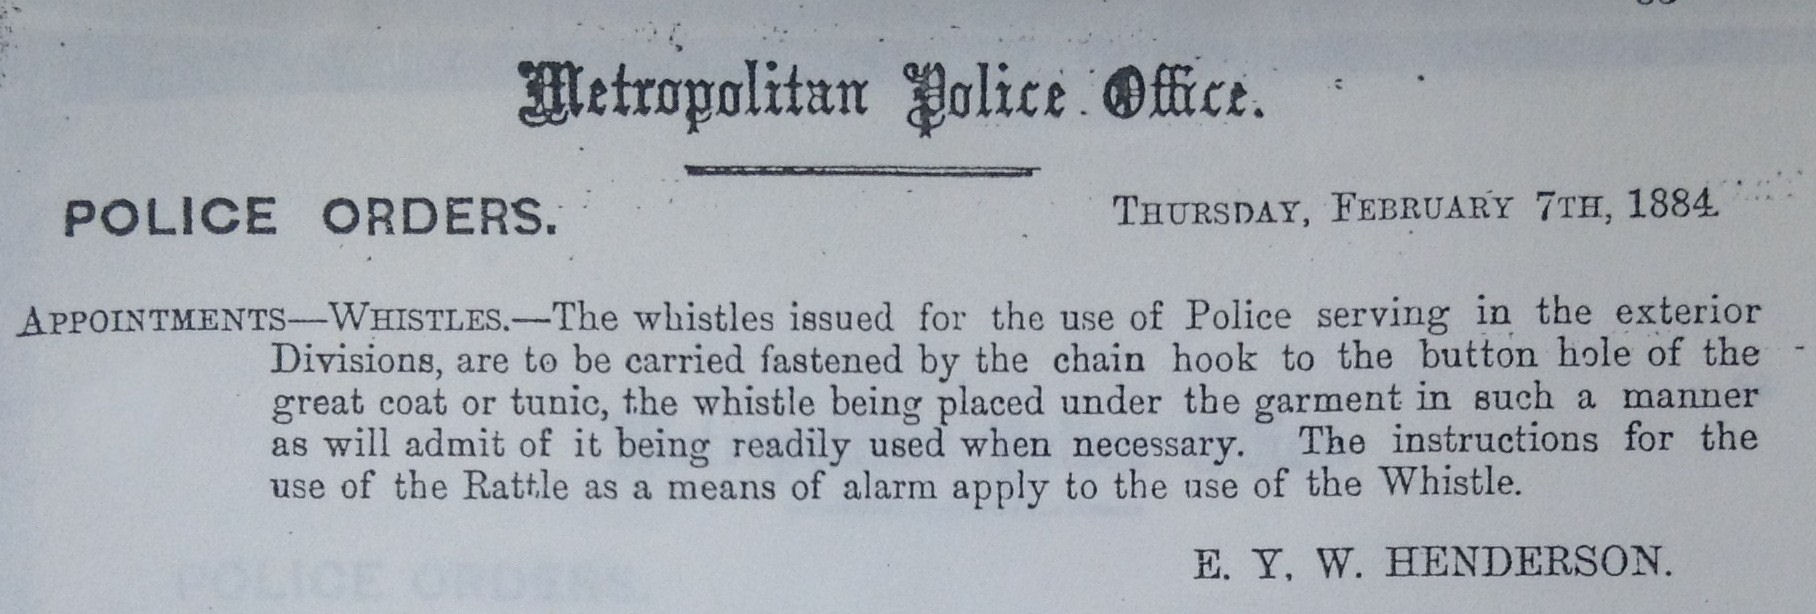 dating police whistles This offers a reliable method of dating a particular whistle royal irish constabulary hudson police whistles showing three types by company addtress.